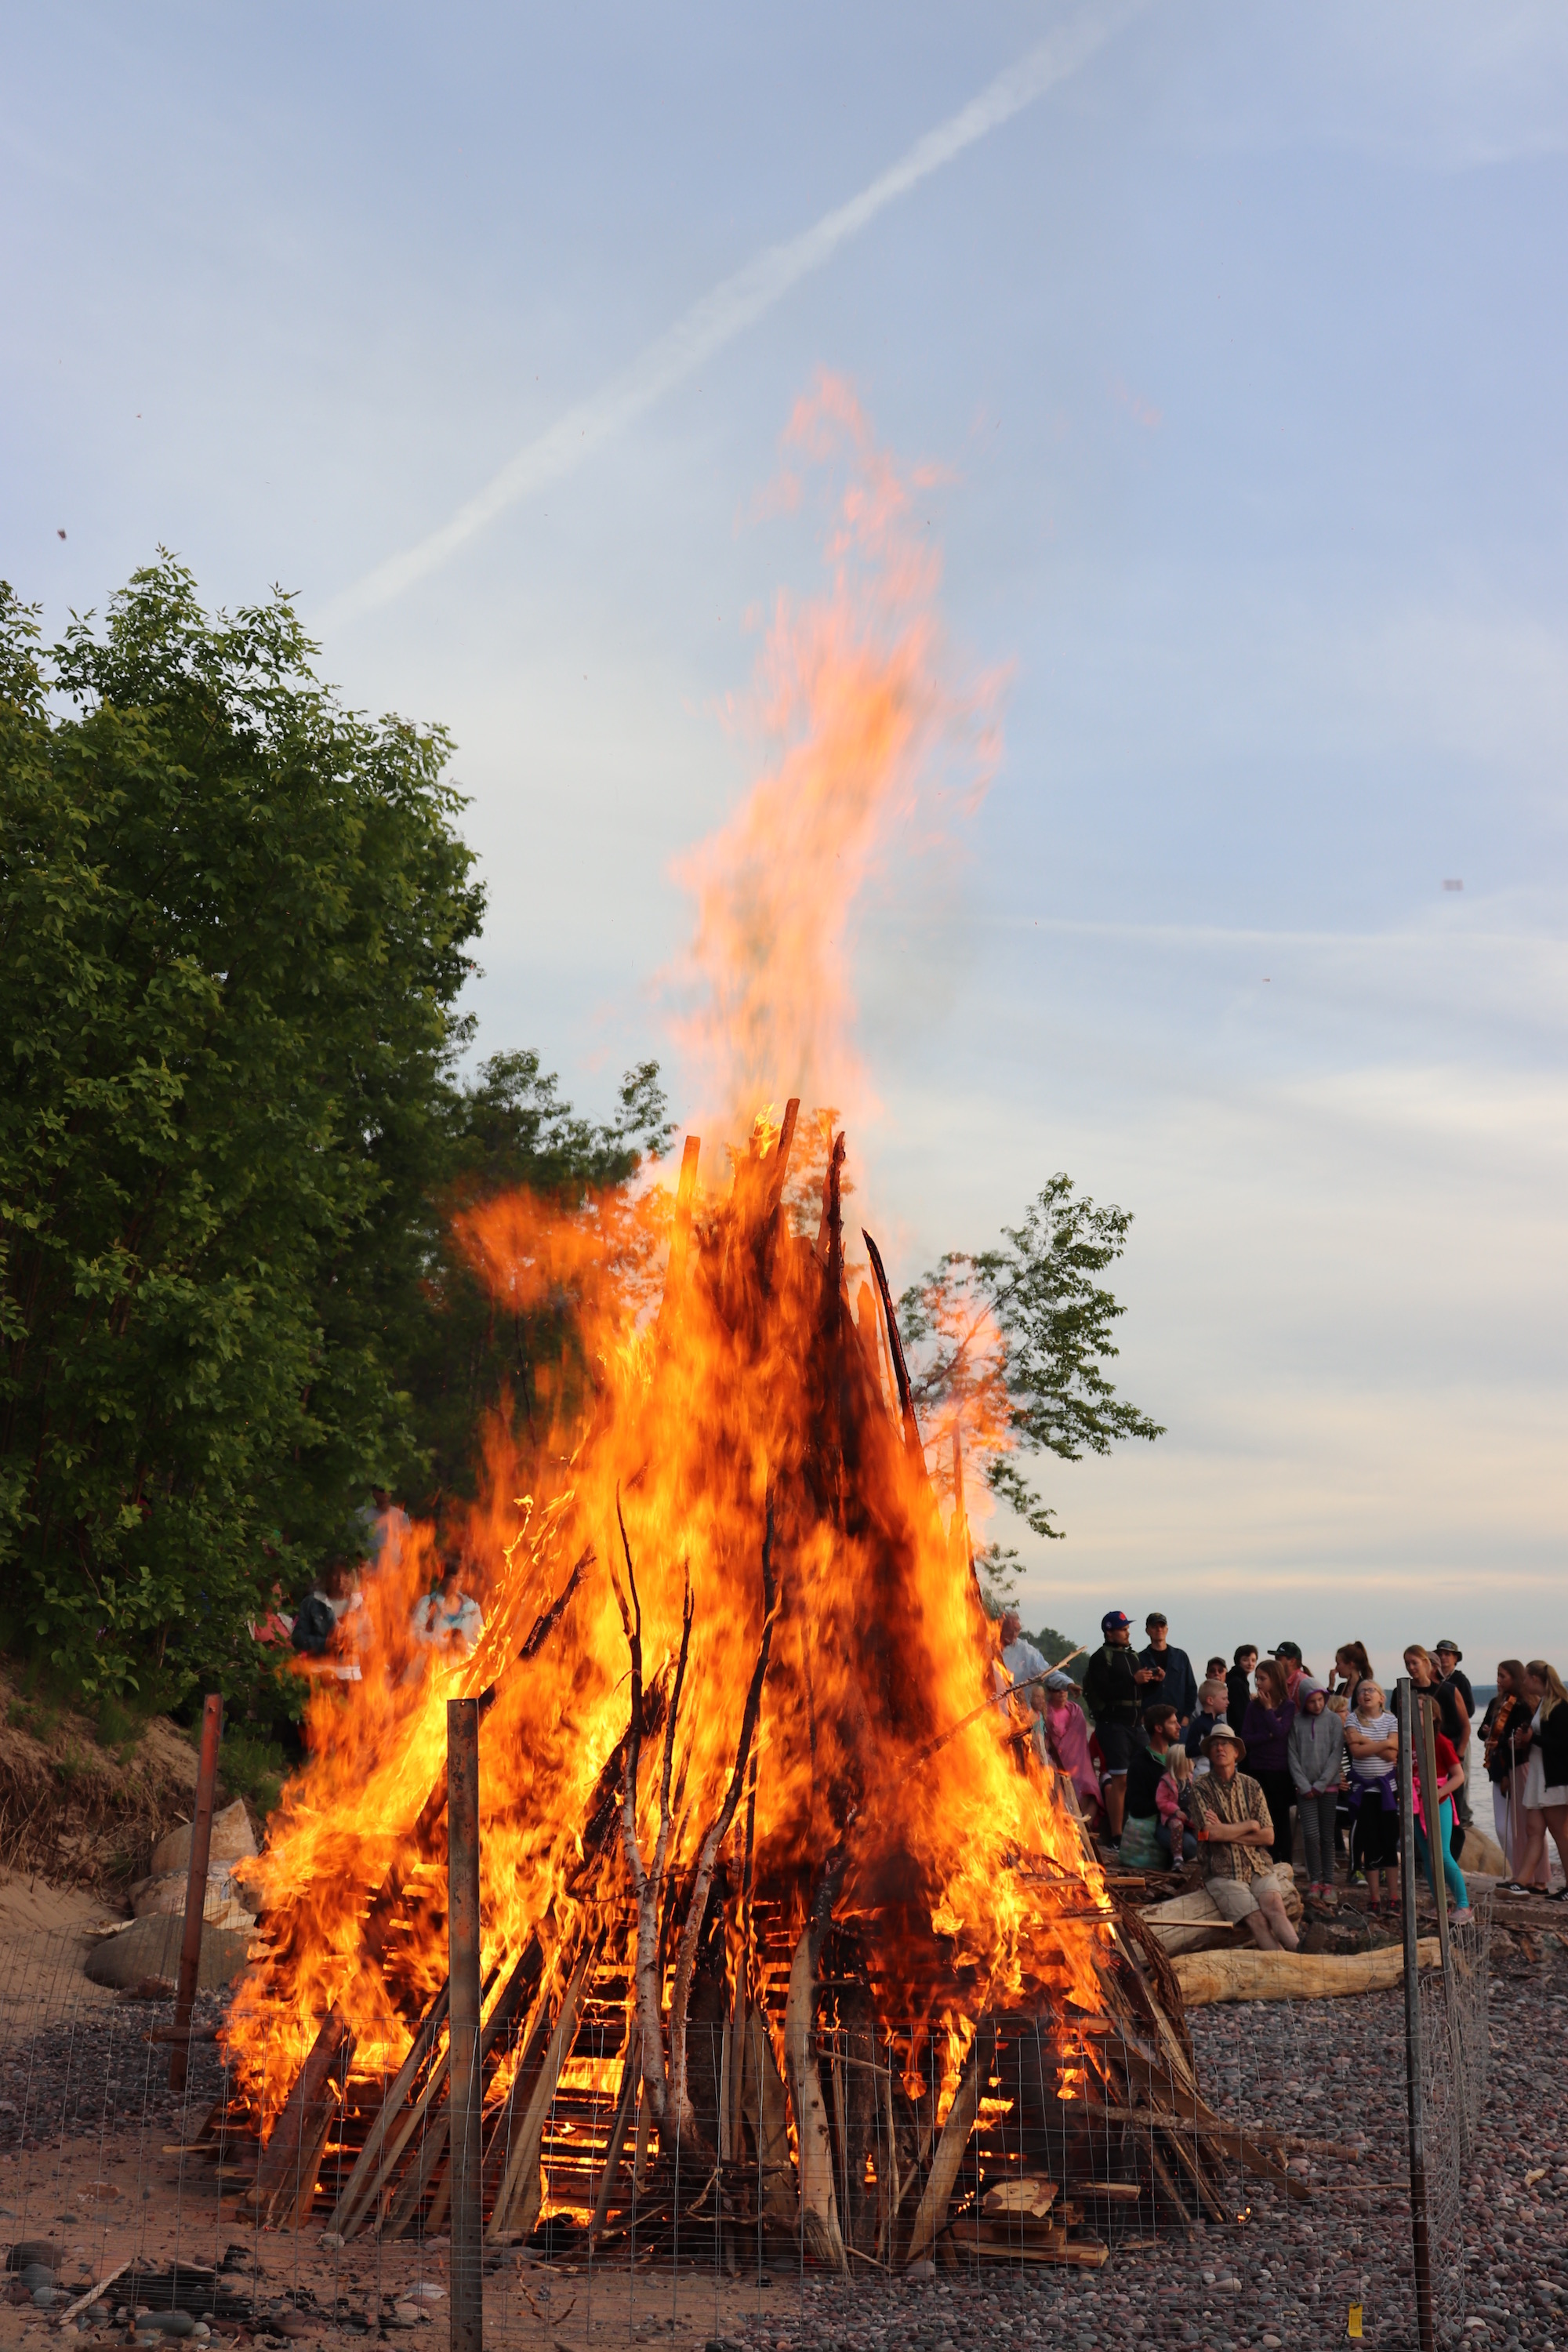 The bonfire is lit and reaches towards the evening sky.